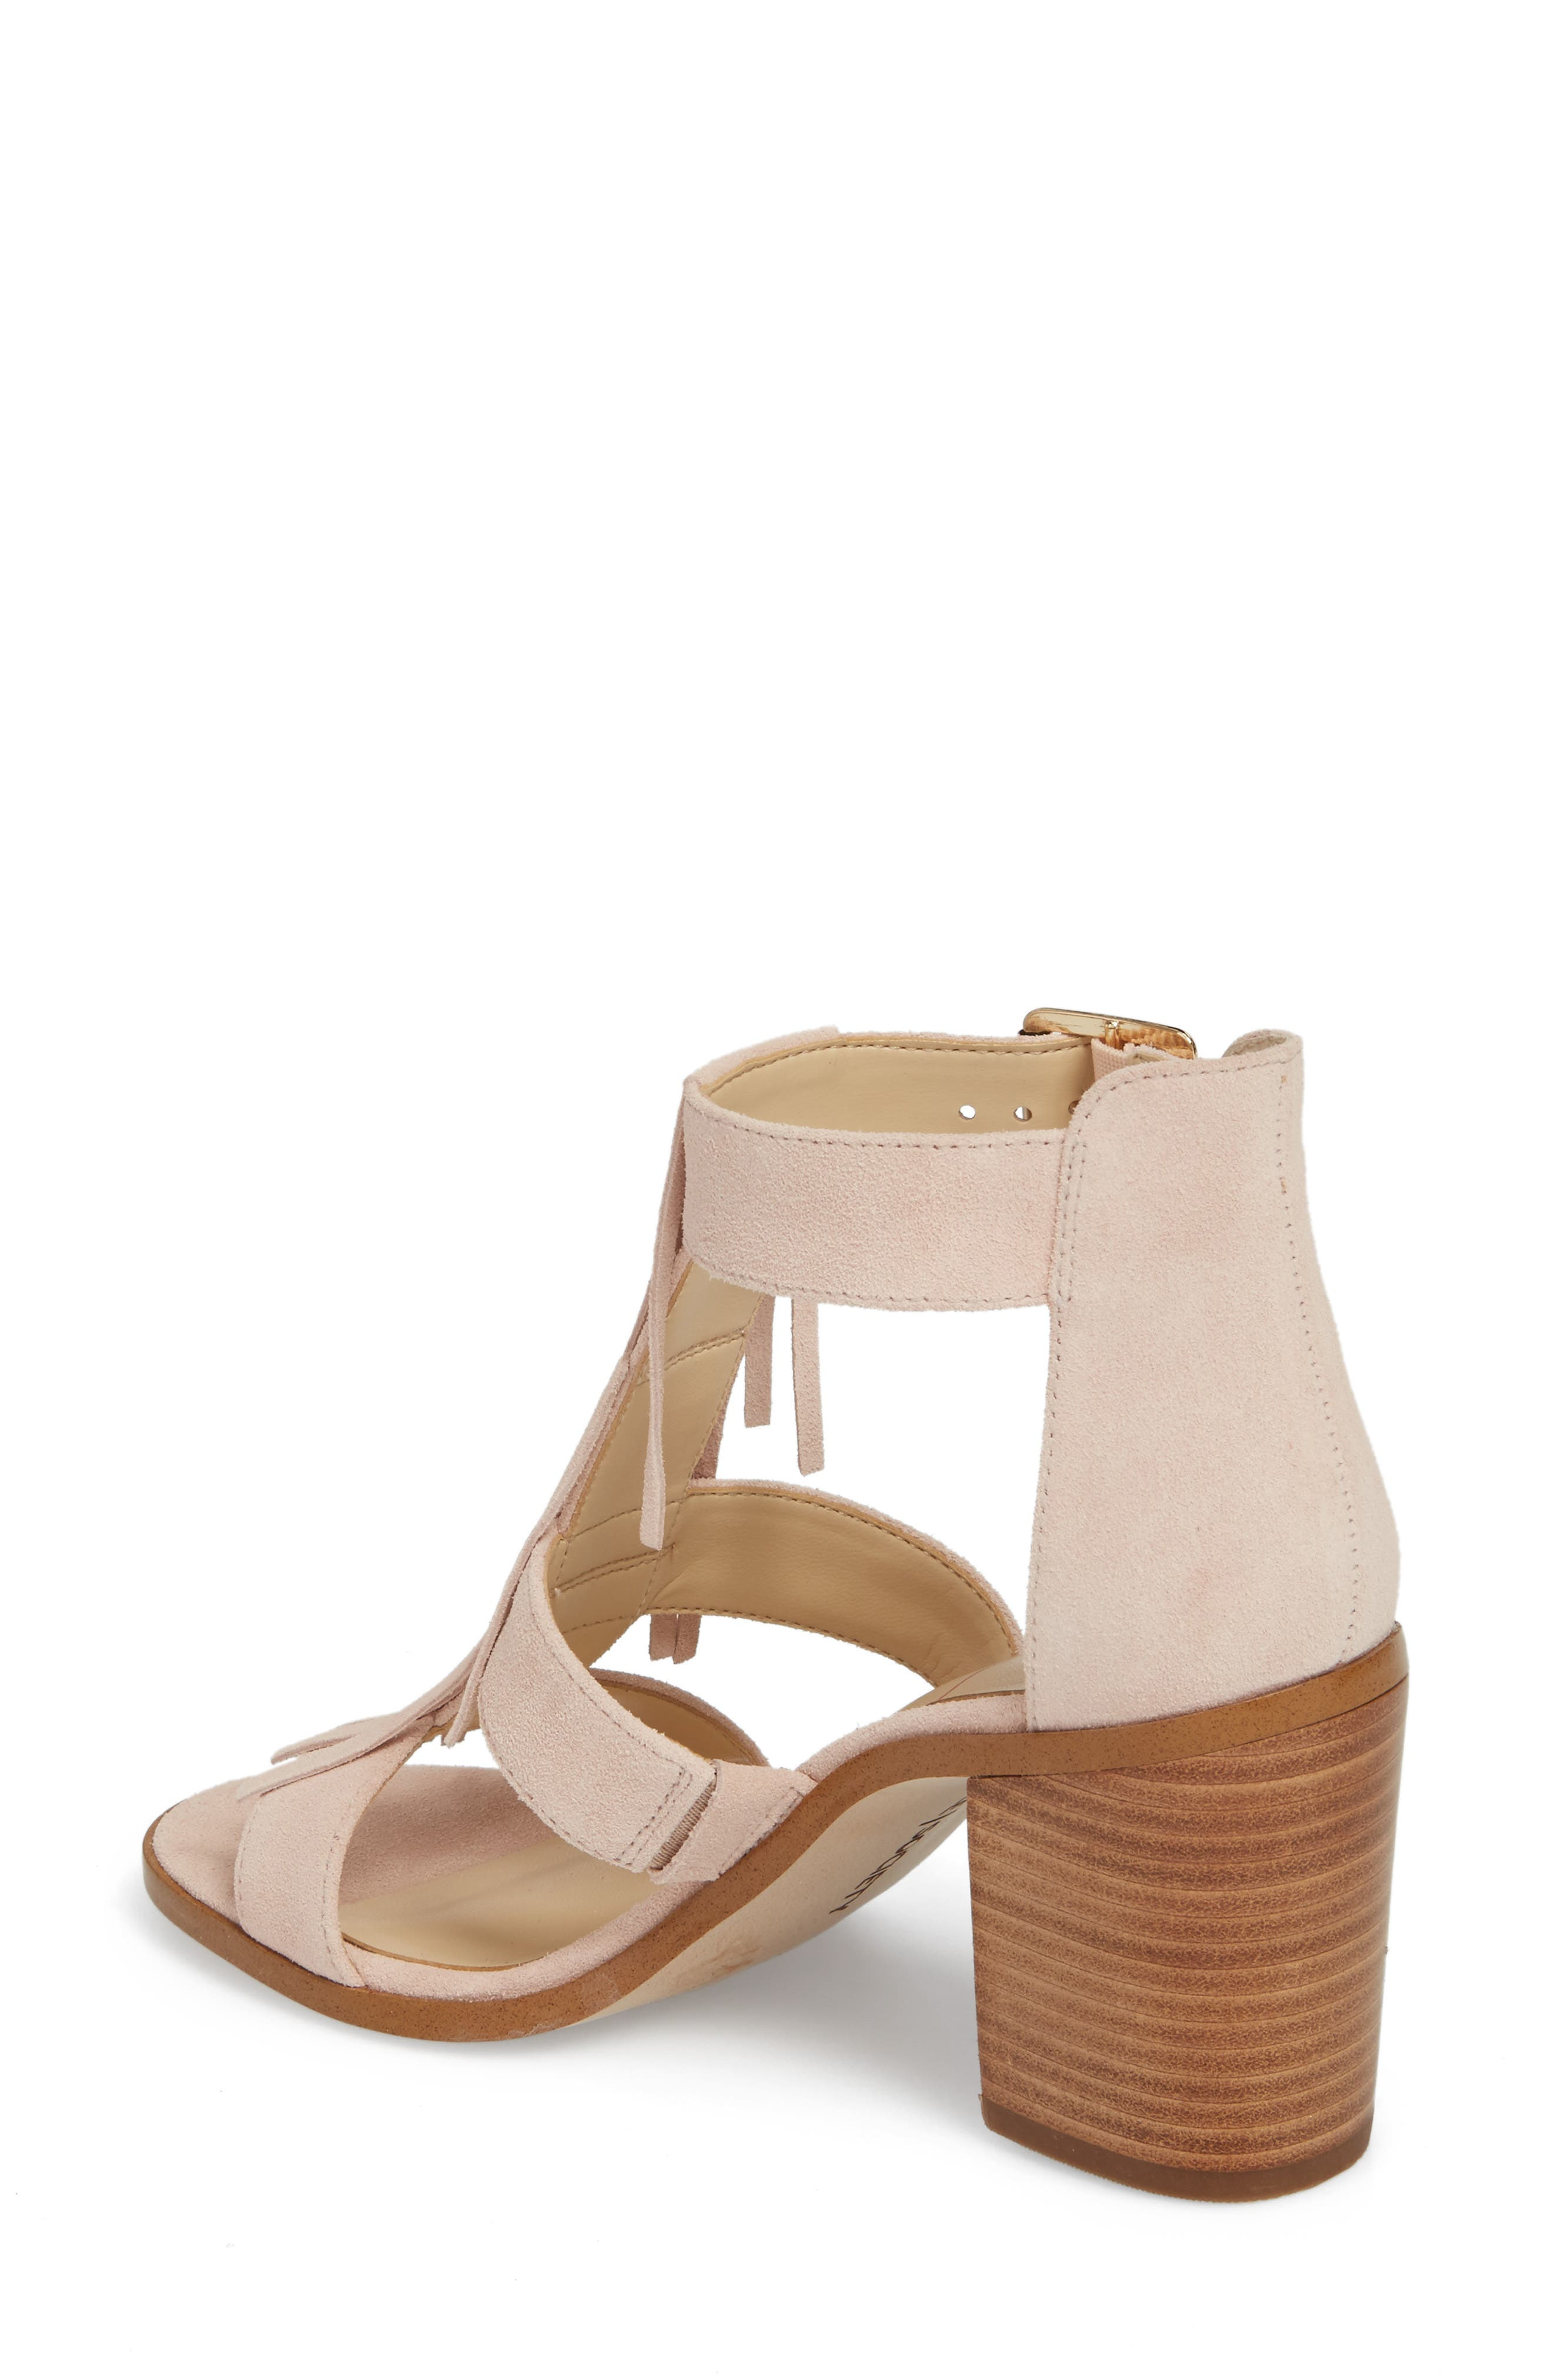 'Delilah' Fringe Sandal,                             Alternate thumbnail 11, color,